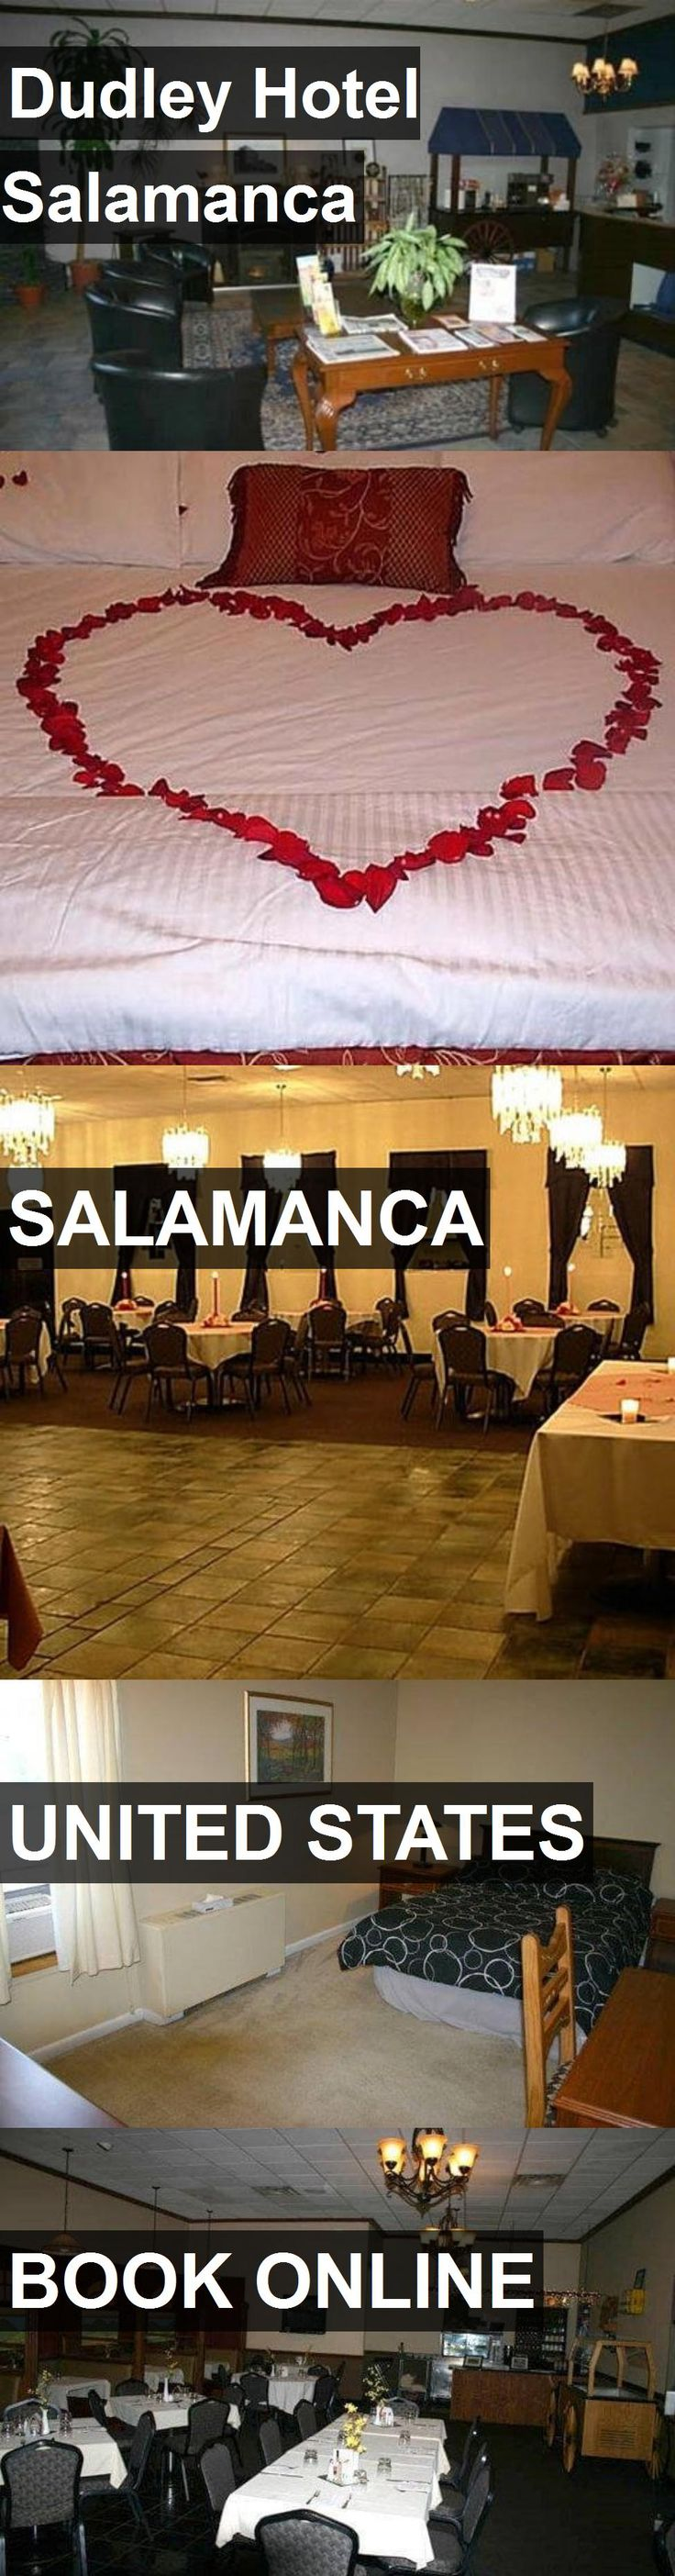 Hotel Dudley Hotel Salamanca in Salamanca, United States. For more information, photos, reviews and best prices please follow the link. #UnitedStates #Salamanca #hotel #travel #vacation